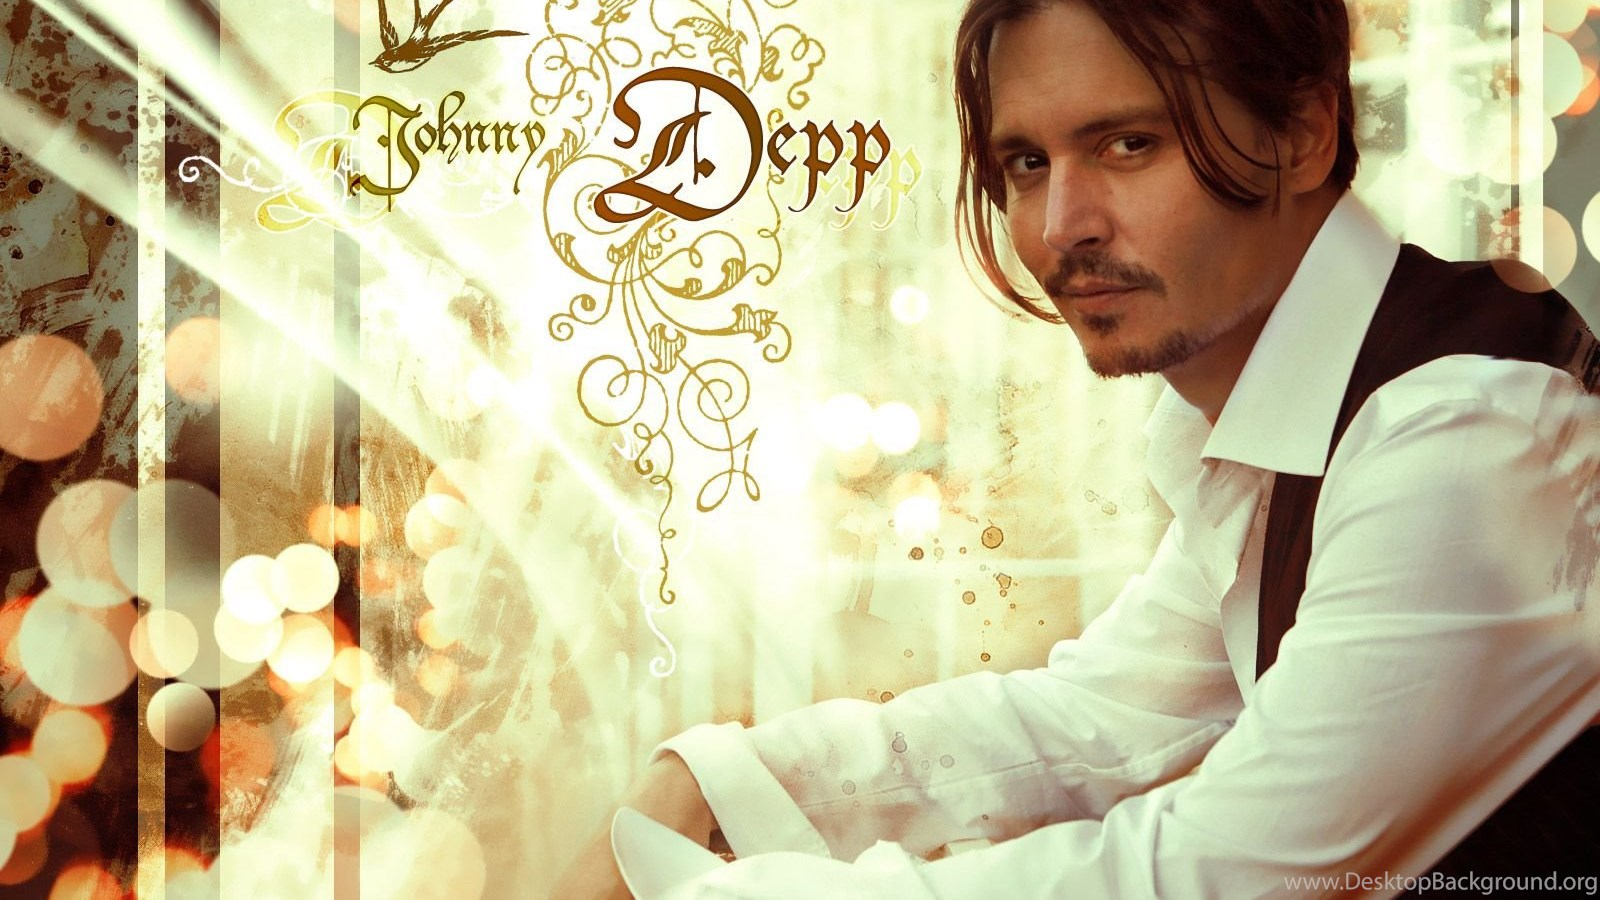 Johnny Depp HD Wallpapers Desktop Background